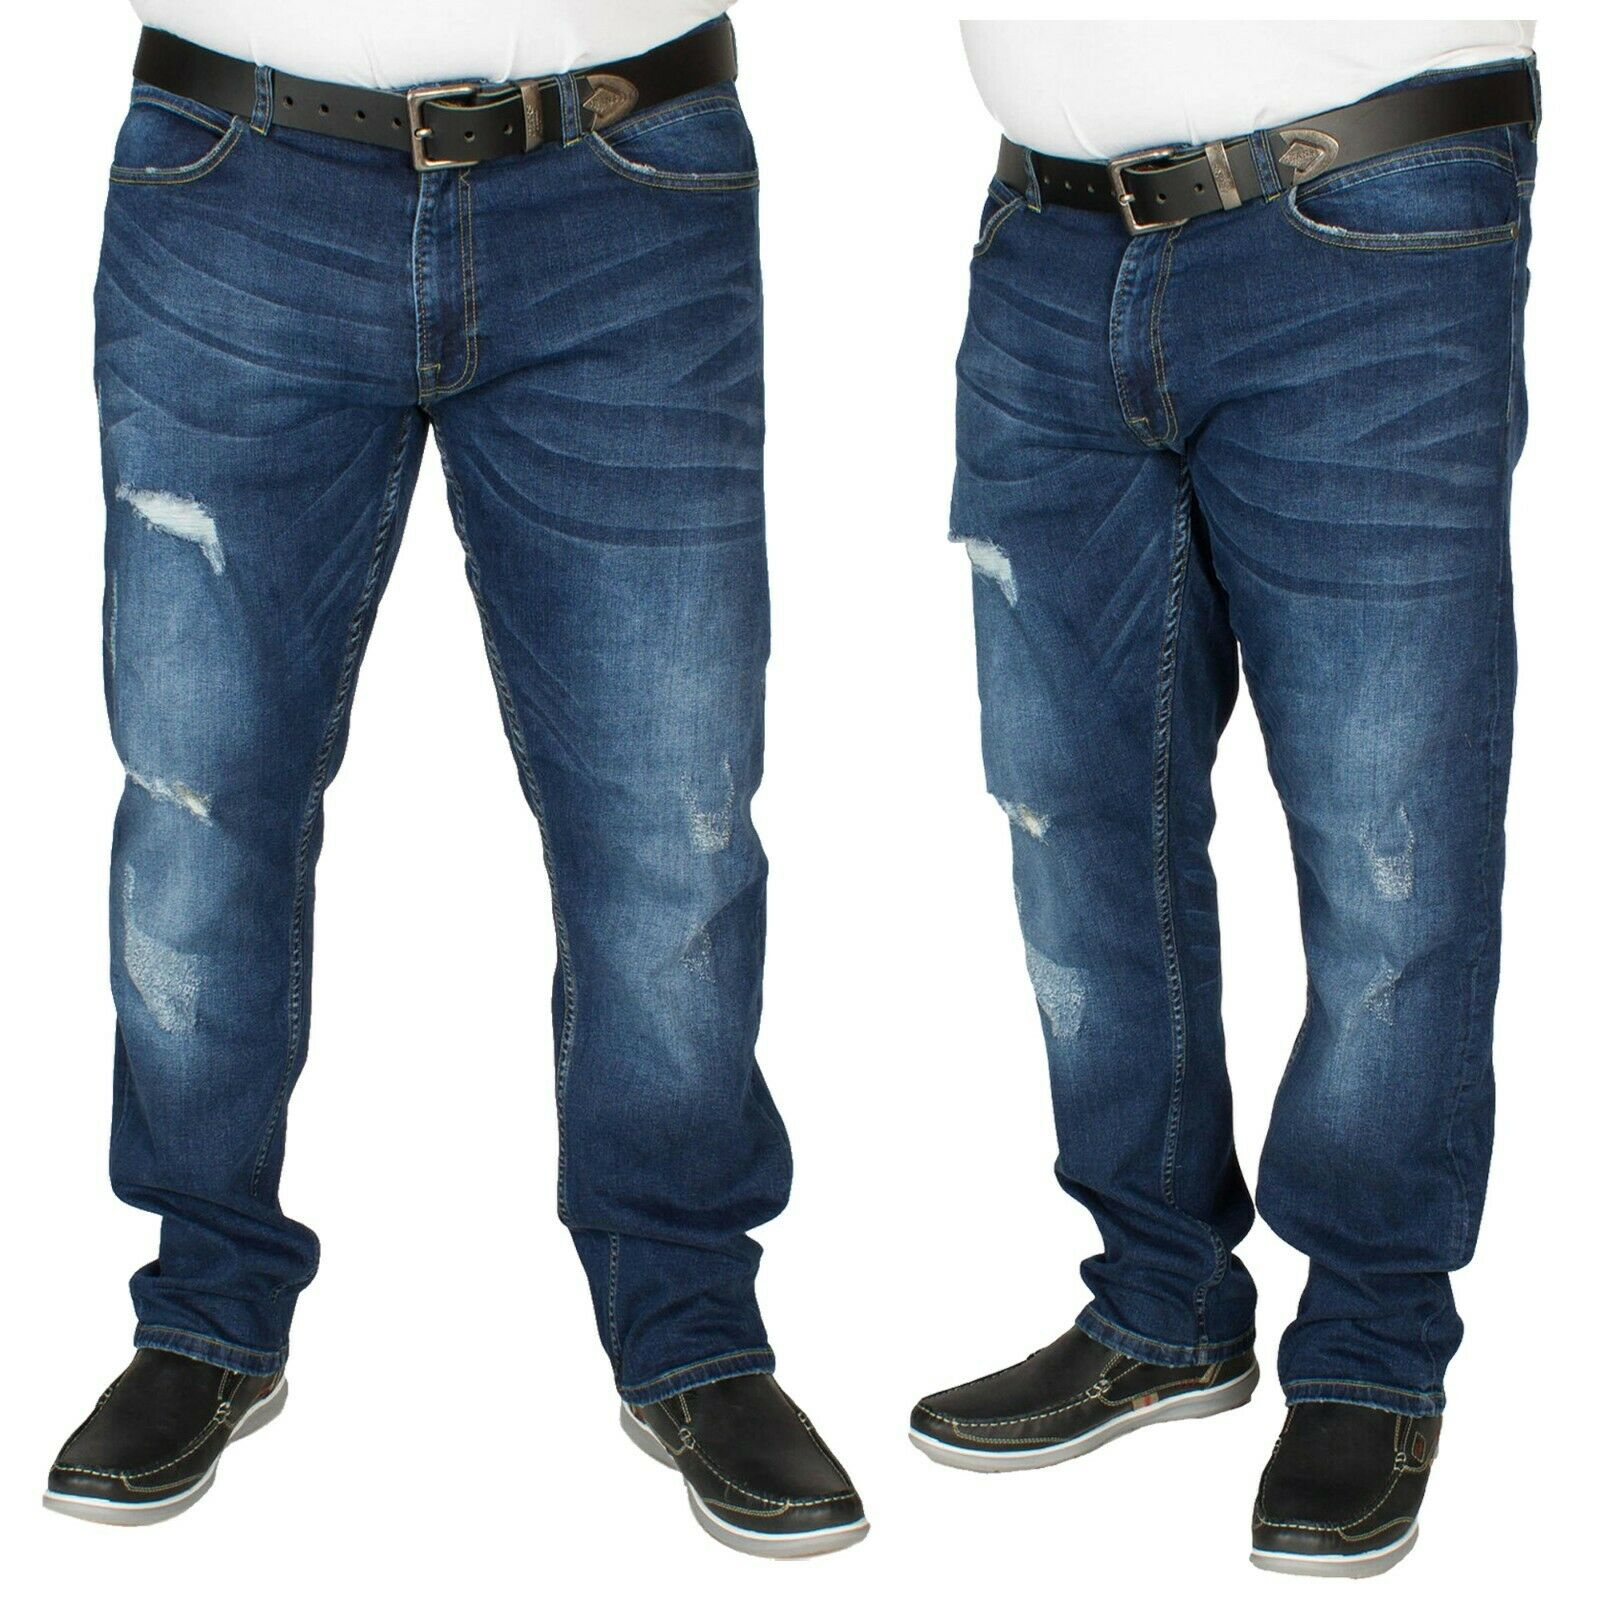 Mens Big King Size Ripped Jeans Duke D555 in Vintage Blue Colour All Sizes 42-56